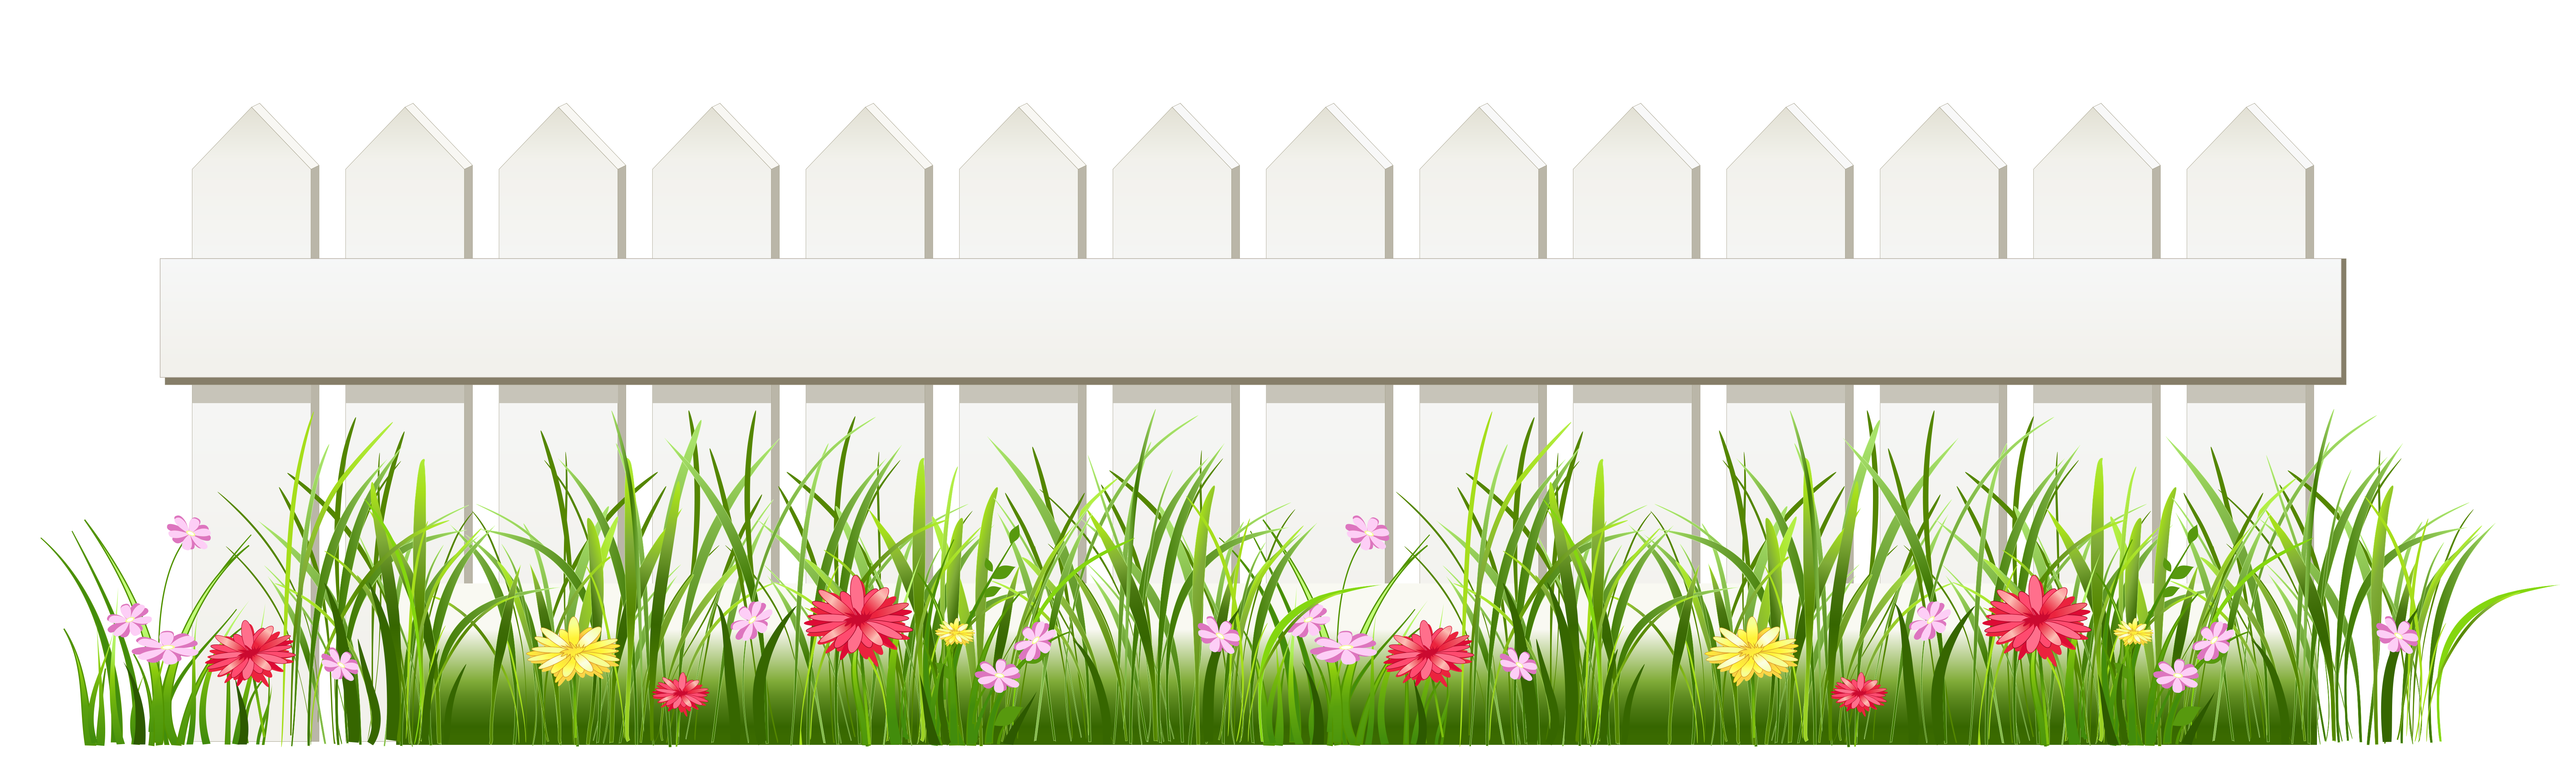 Fence Clipart Free.